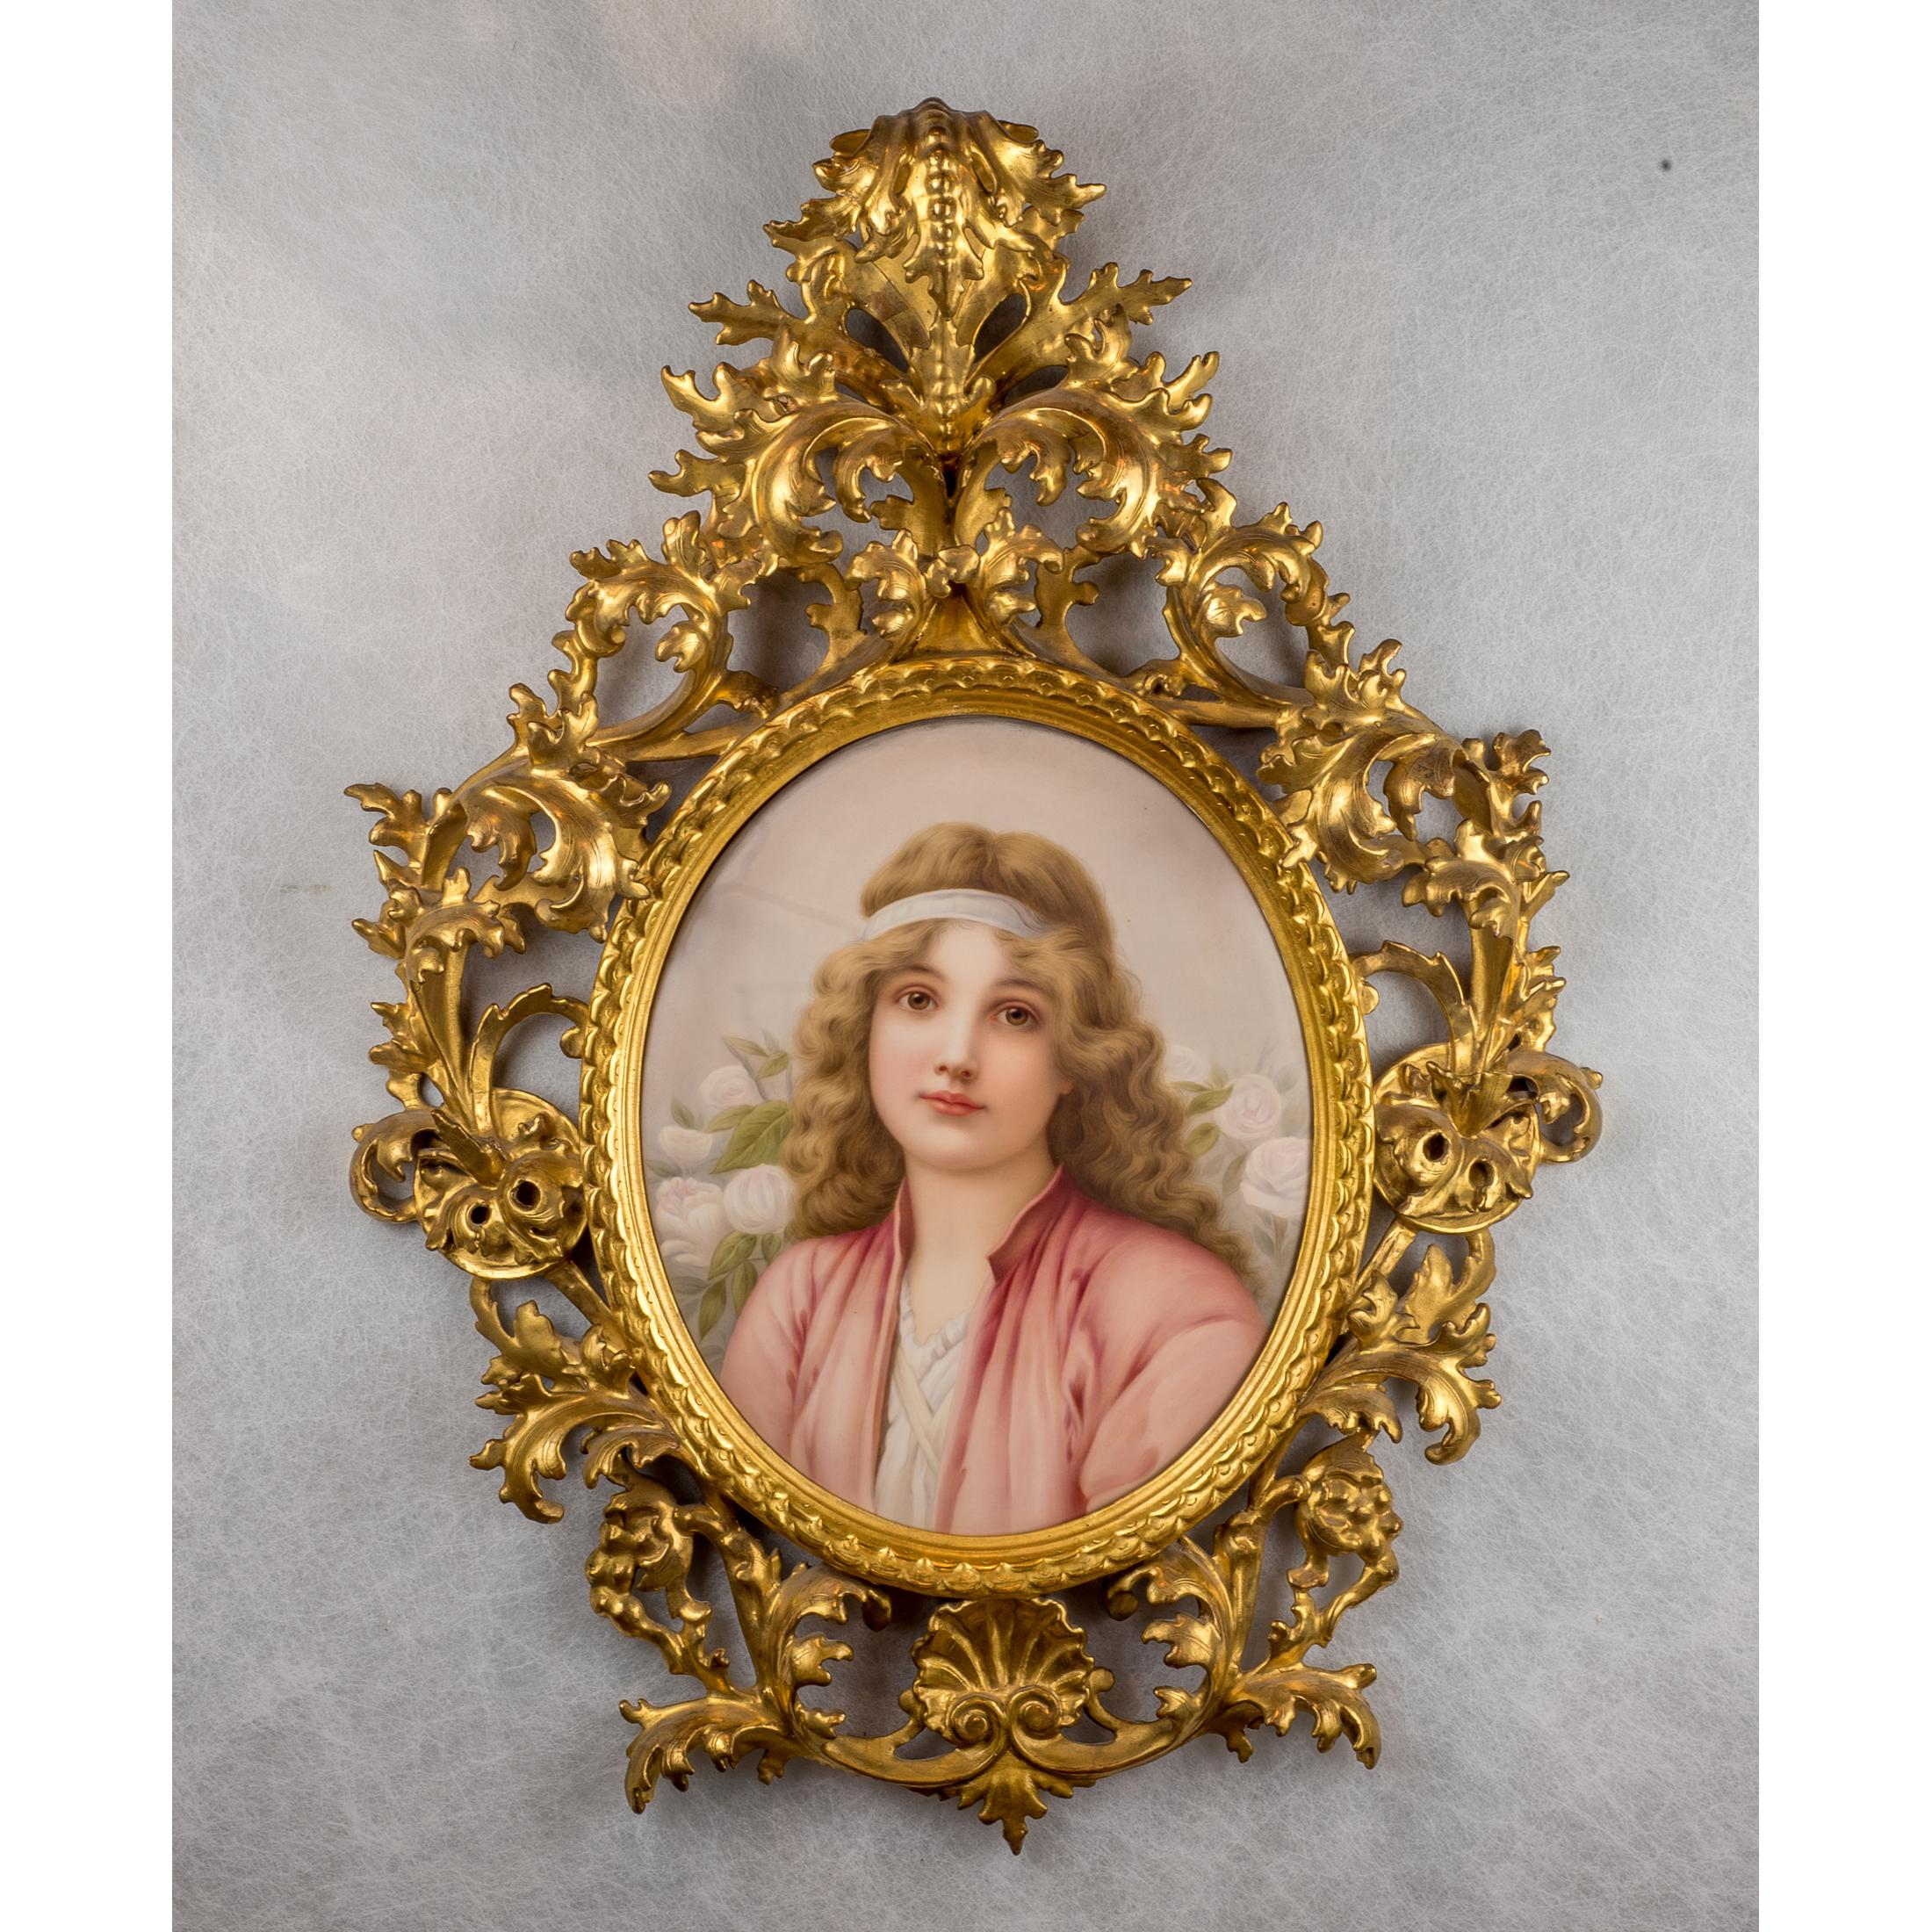 Fine Quality KPM Porcelain Plaque of Beautiful Young Maiden